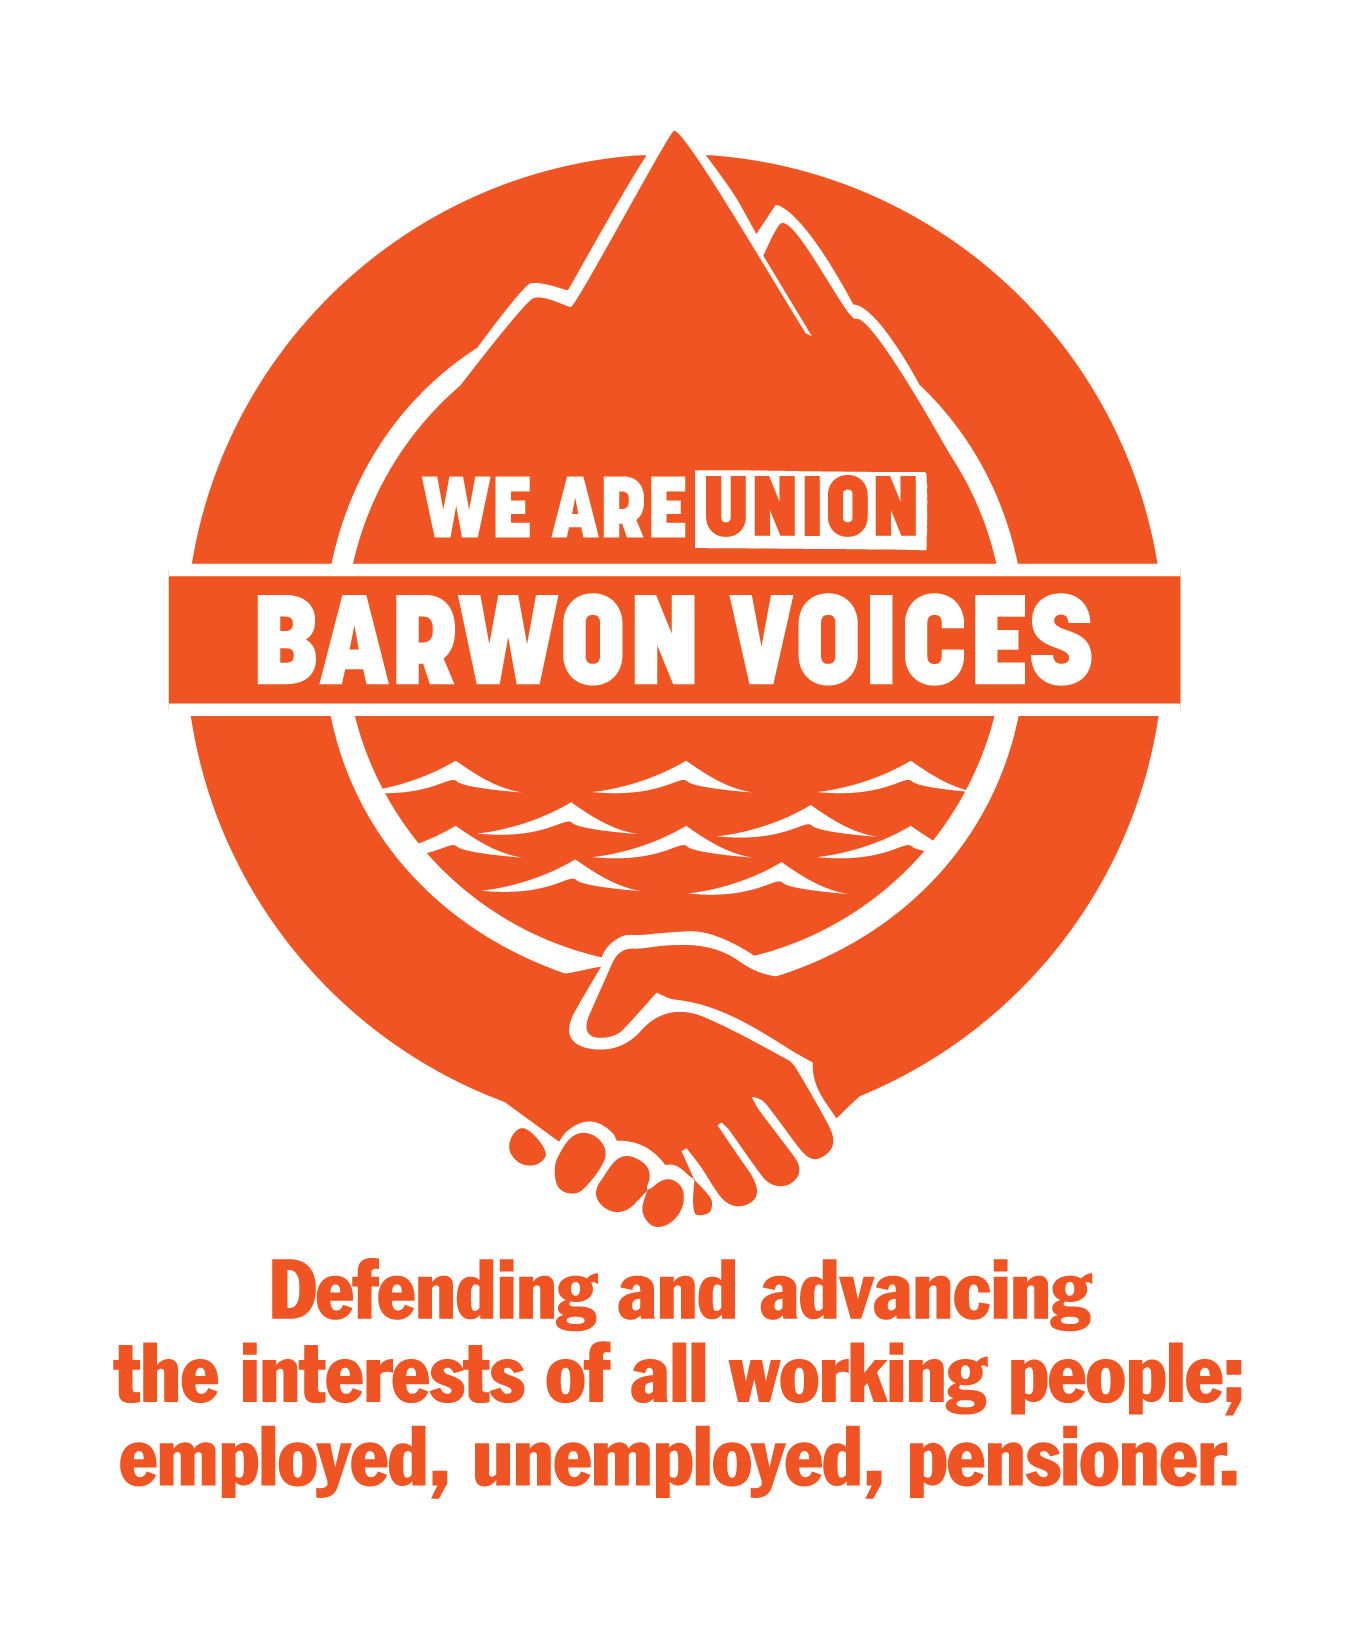 barwon voices logo